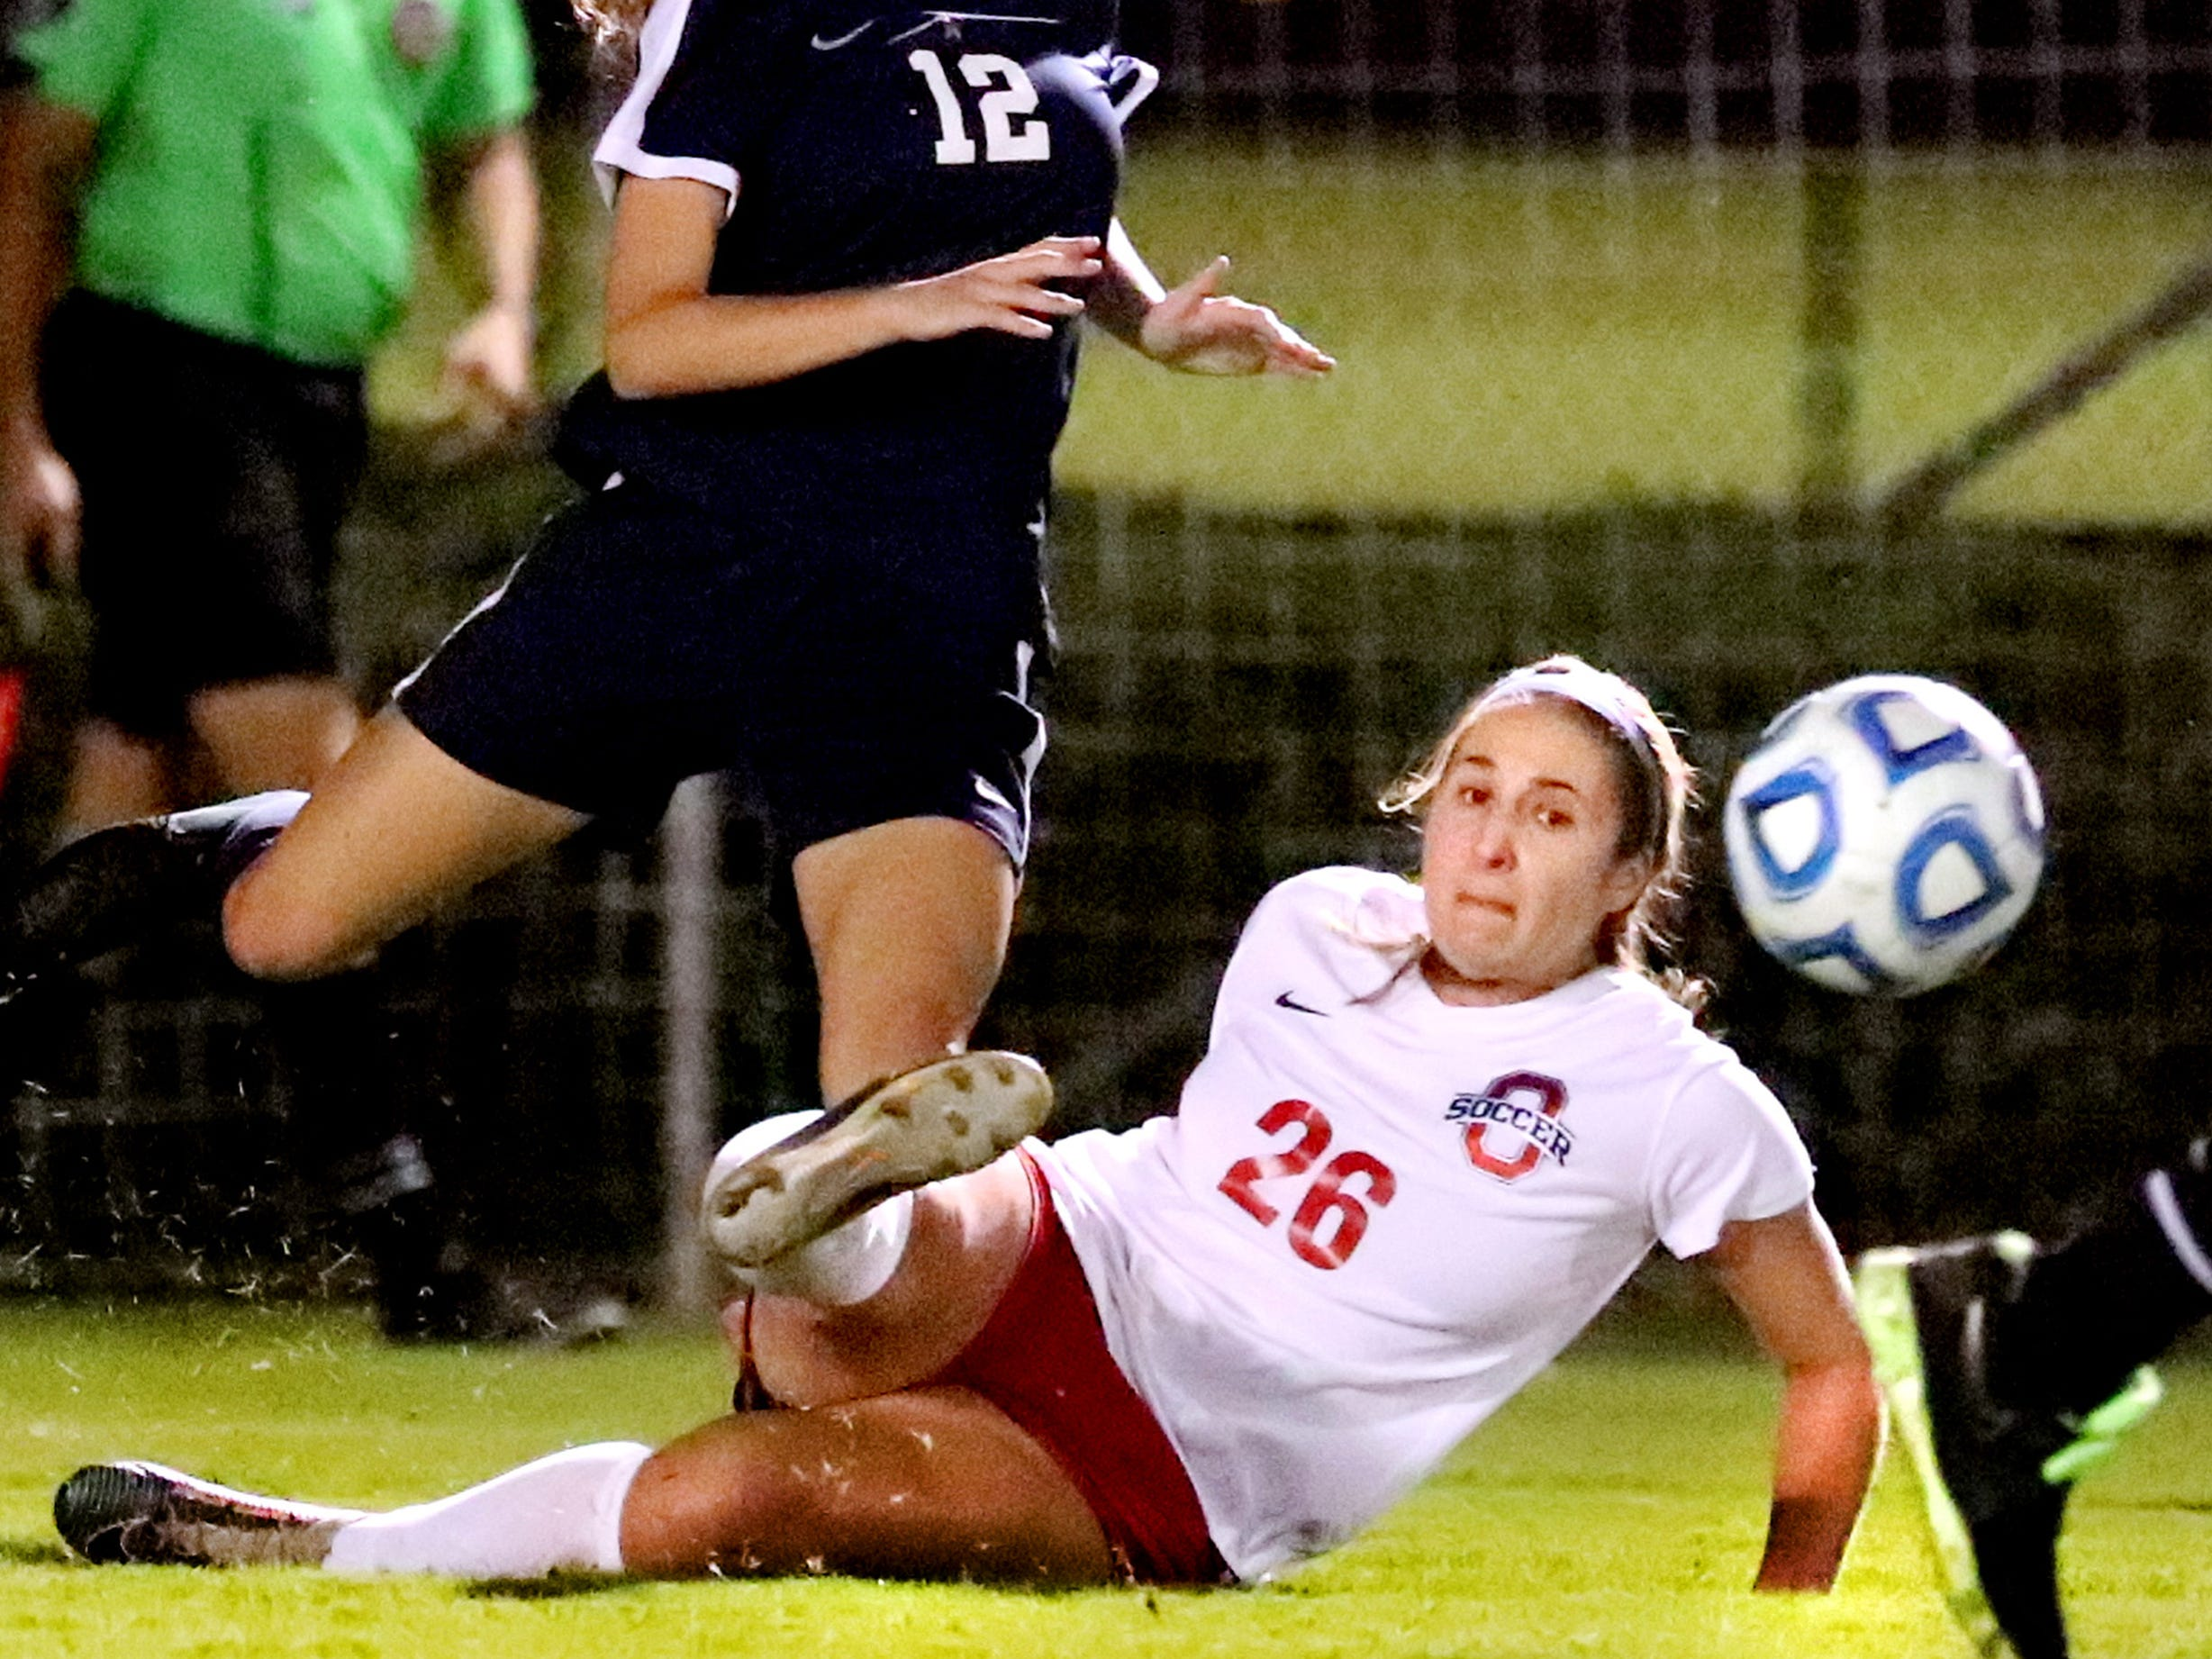 Oakland's Monica Mullaney (26) falls to the ground as she kicks the ball as Siegel's Mia Roberts (12) comes up from behind her during the semifinals of the 7-AAA Soccer Tournament, on Tuesday,  Oct. 09, 2018 at the Siegel Soccer Complex.